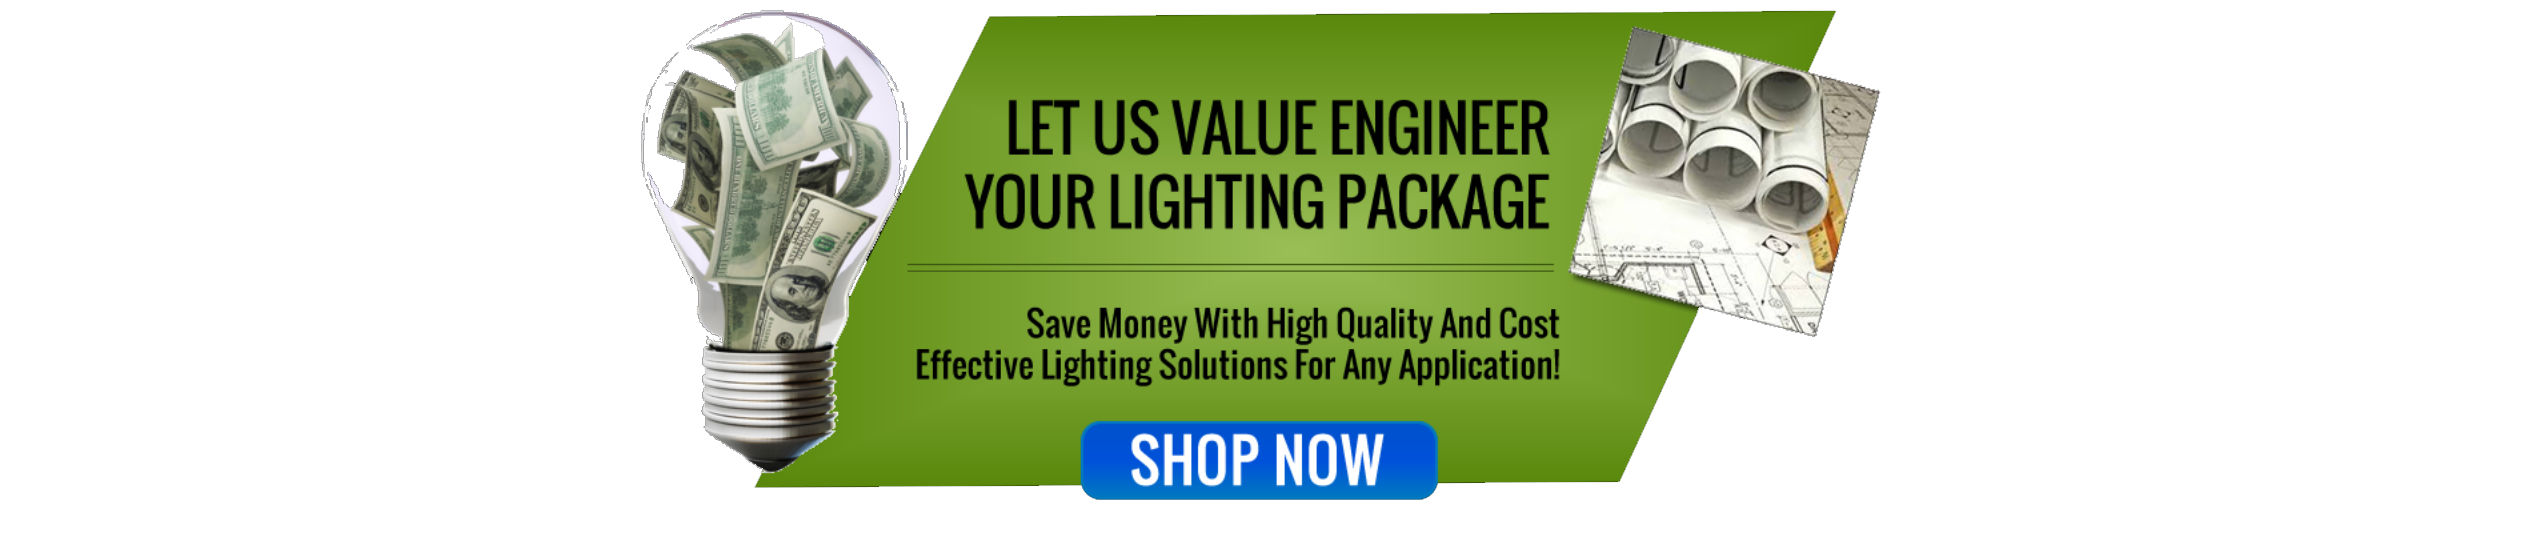 Energy_Efficient_LED_Induction_HID_Lamps_Bulbs_Lighting_Save_Money_Lighting_Hdr